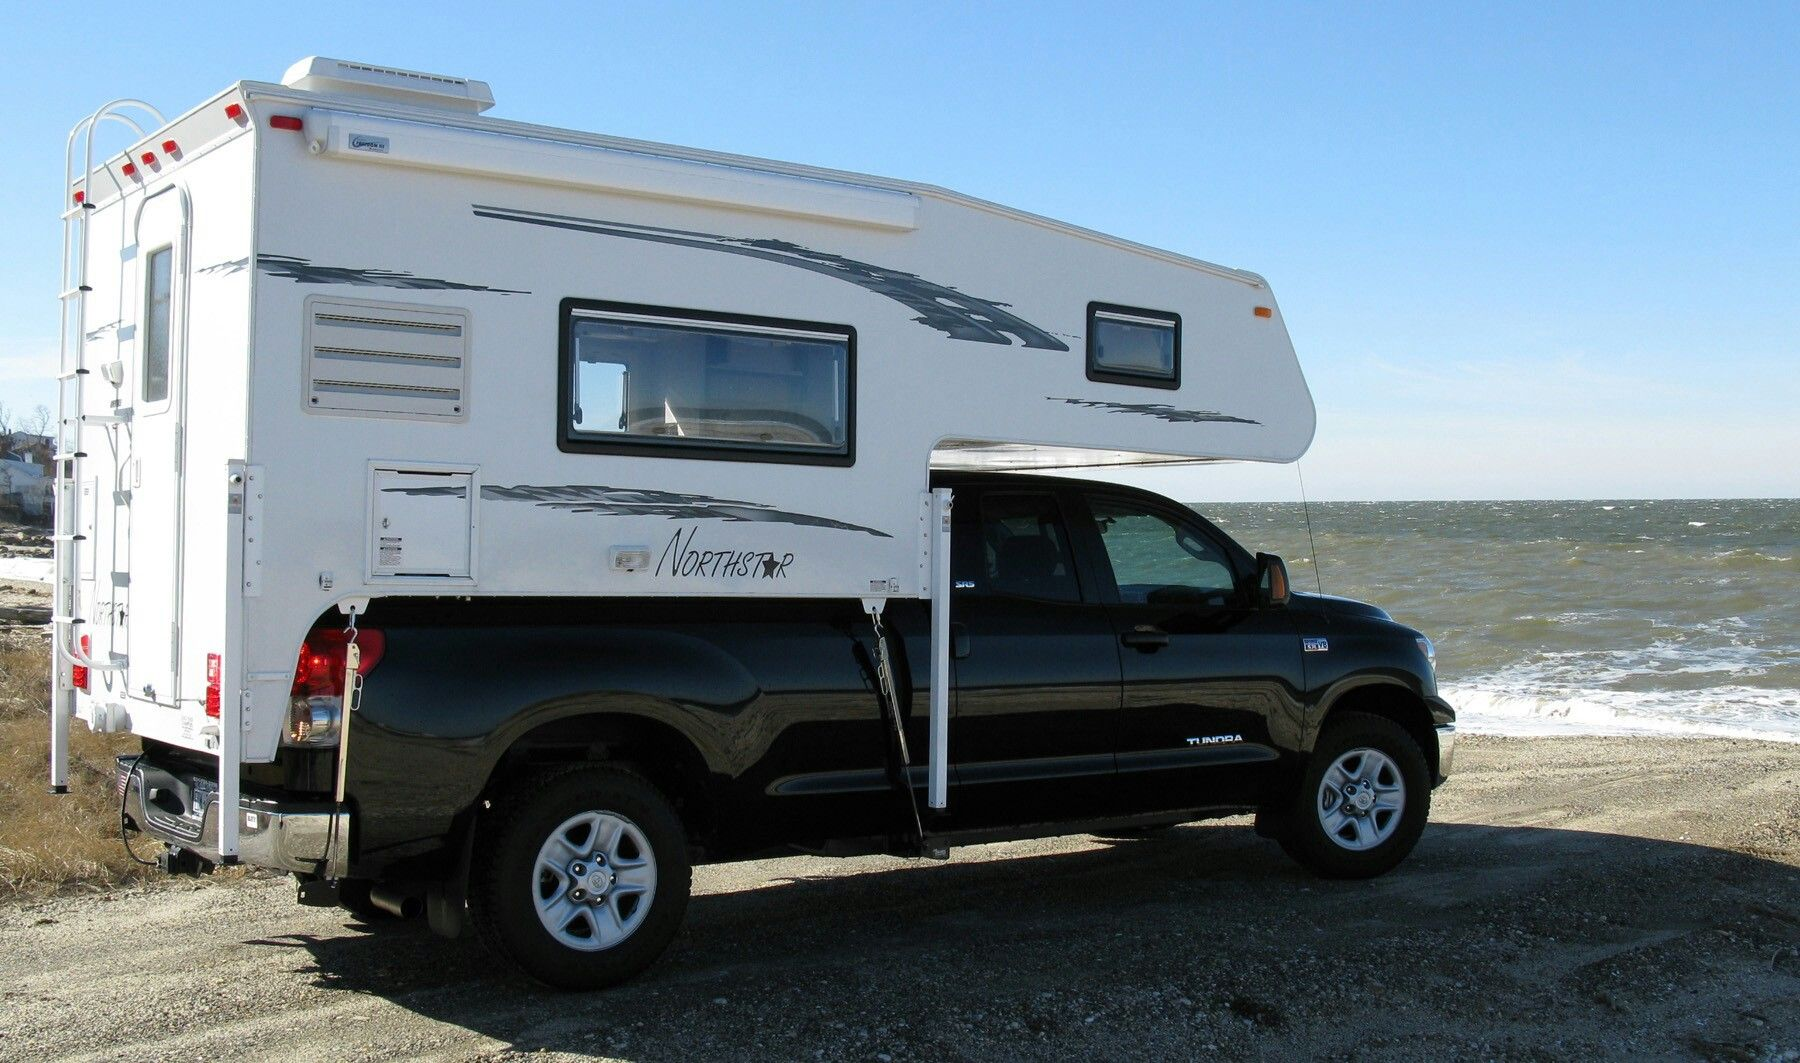 Toyota Tundra Truck Camper … Truck campers for sale